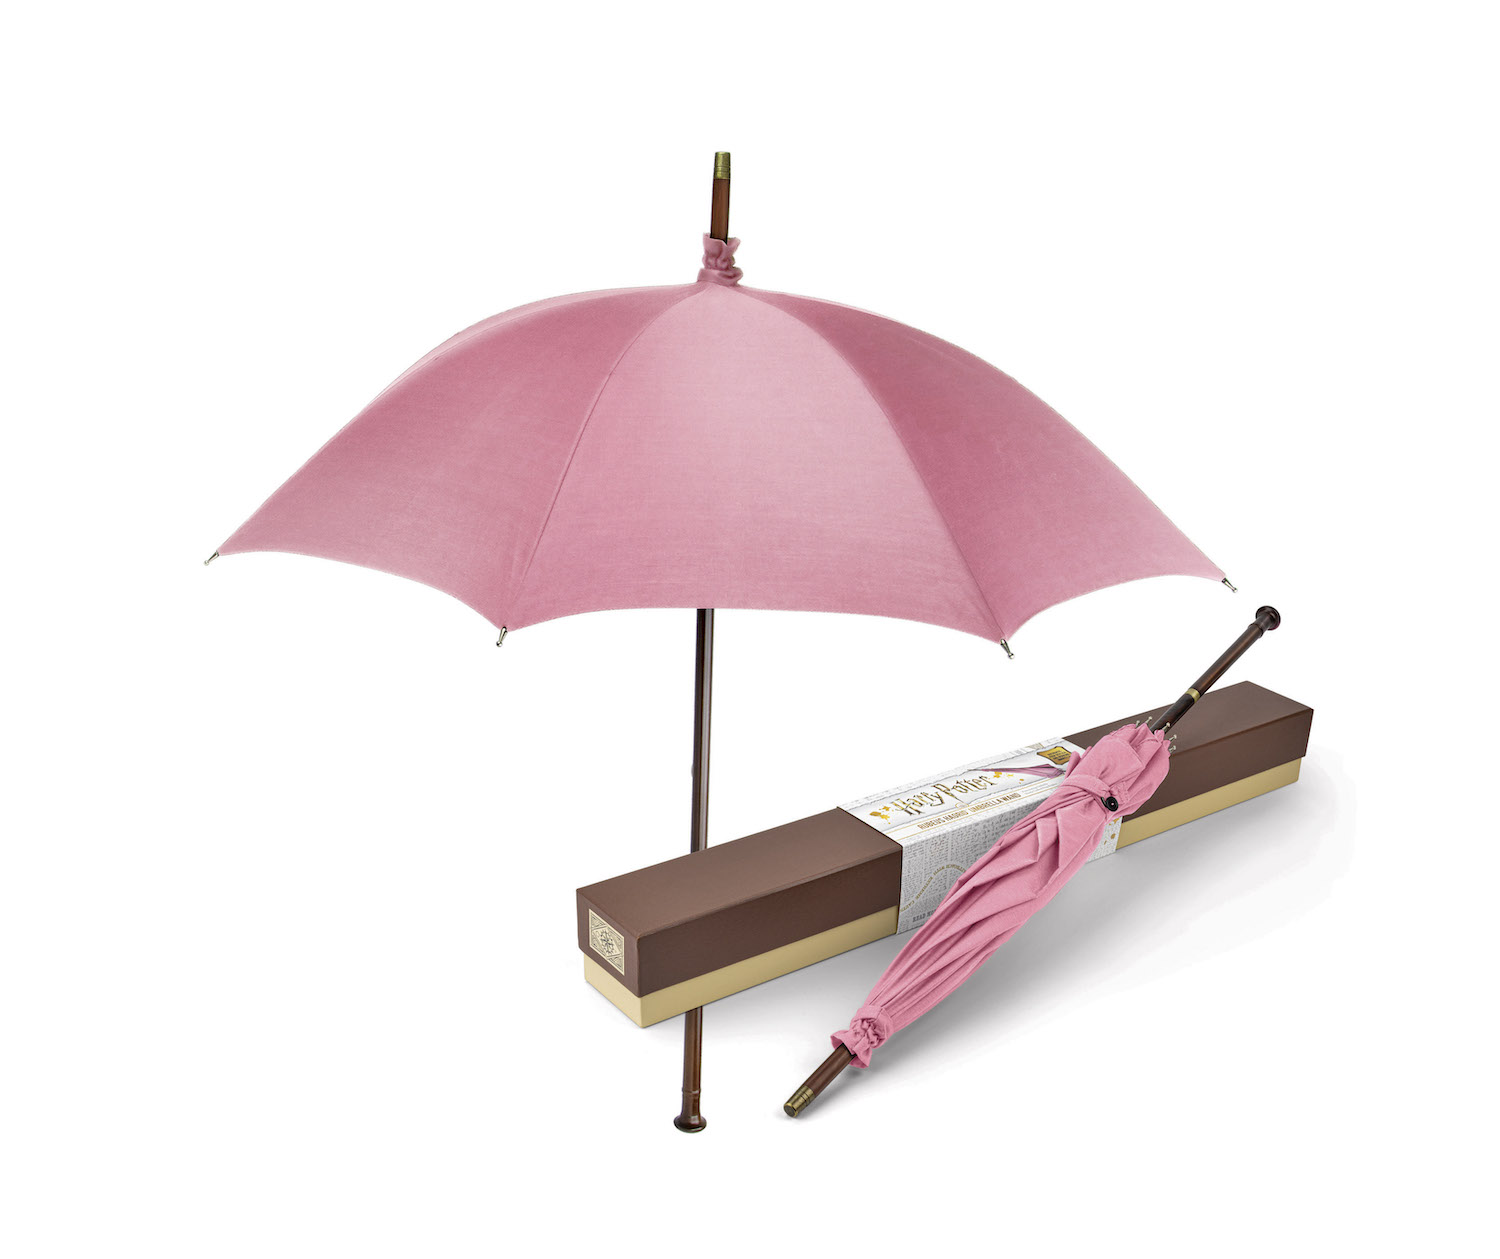 The umbrella comes packaged in a box and can be fastened shut with a button loop.